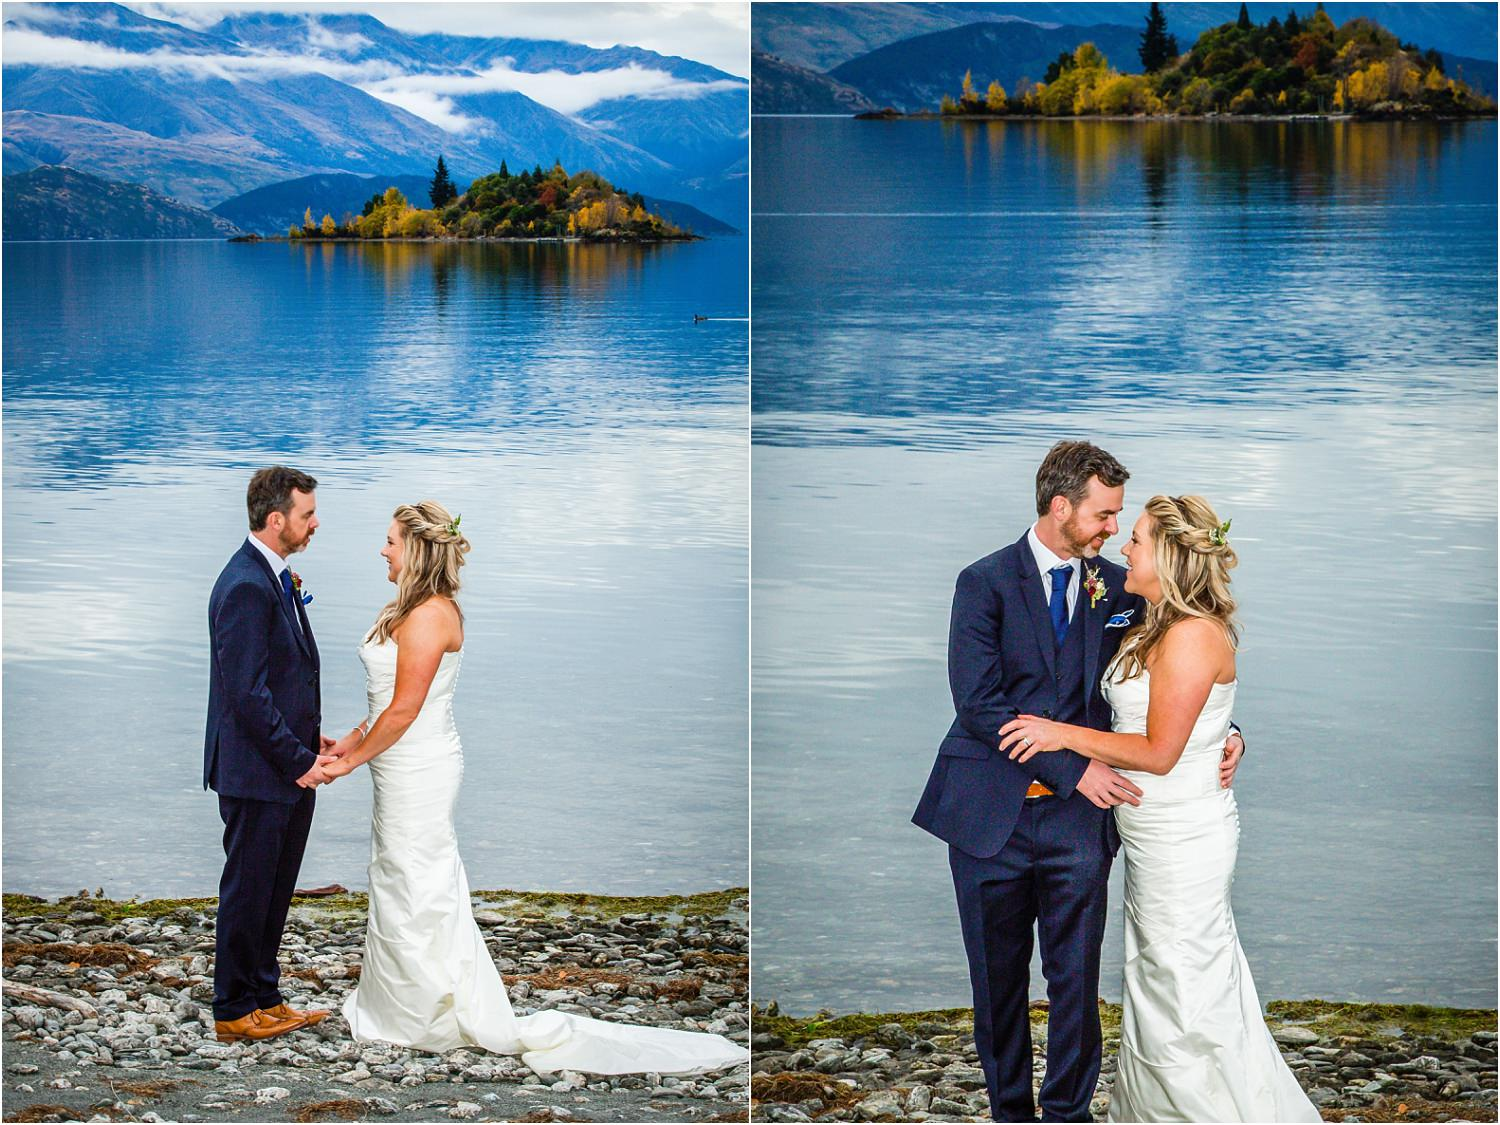 rippon-wedding-photography-21.jpg